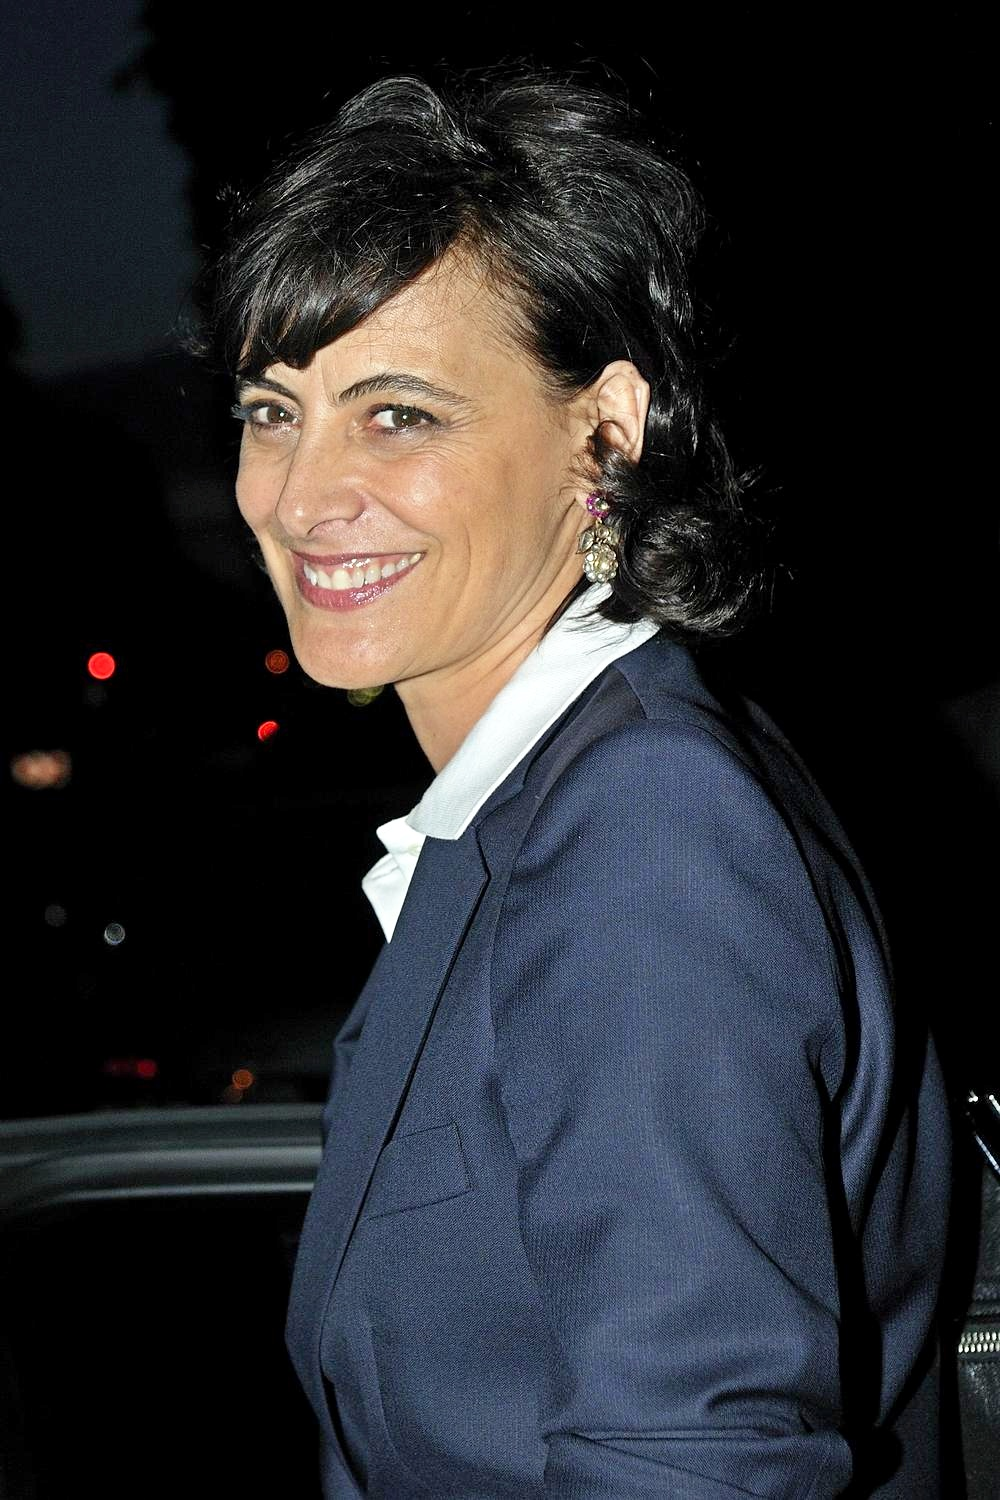 The 62-year old daughter of father André de Seignard and mother Cecilia Sánchez Cirez Ines de la Fressange in 2020 photo. Ines de la Fressange earned a million dollar salary - leaving the net worth at 43 million in 2020